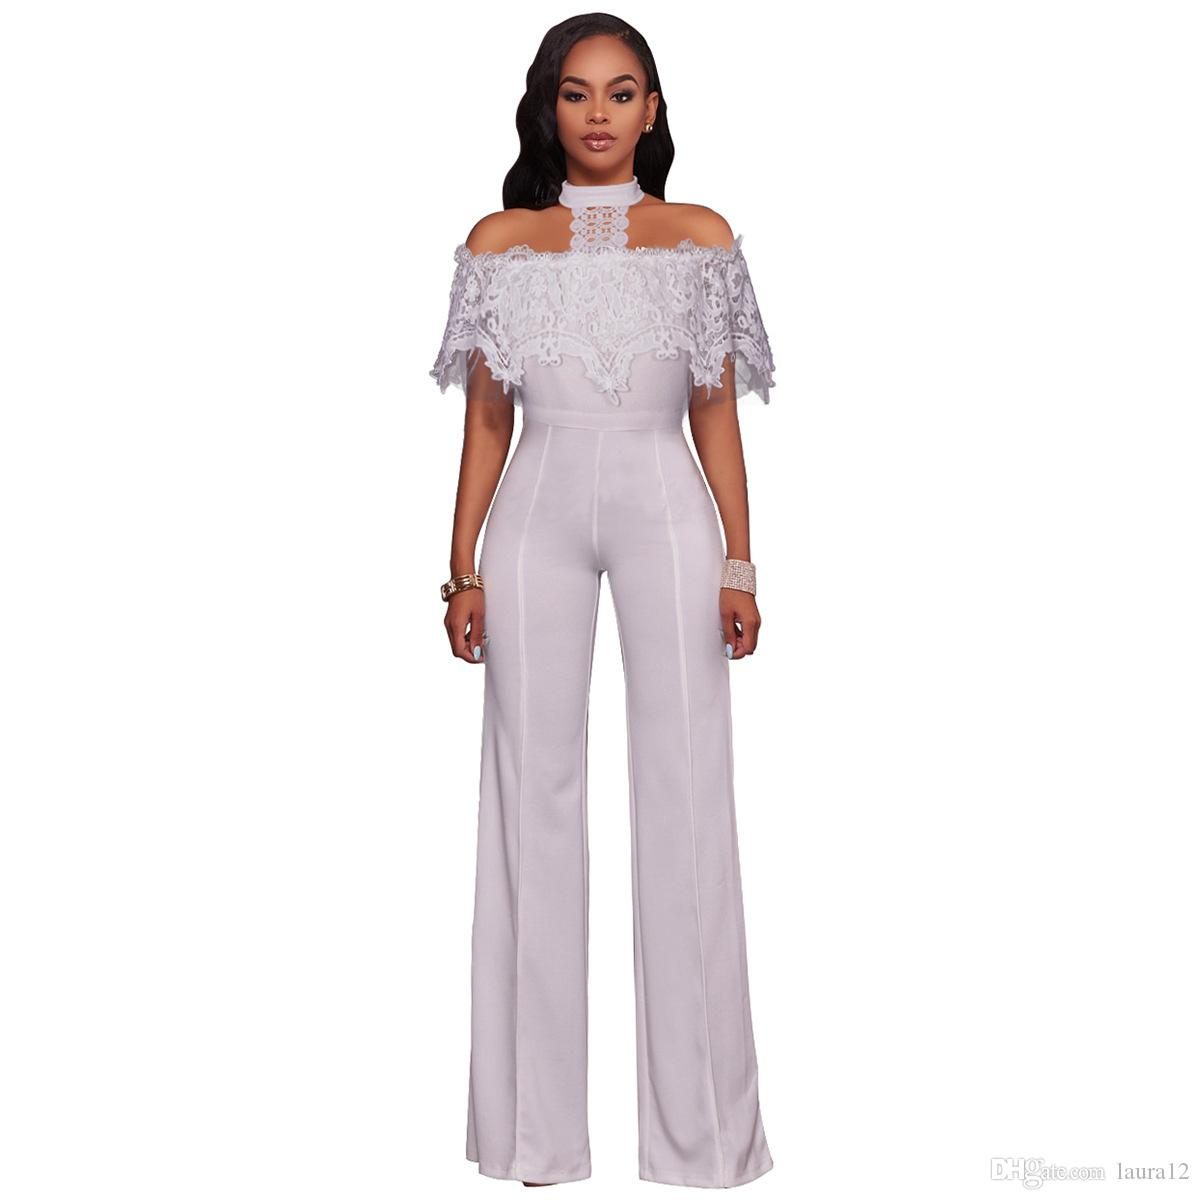 2018 Trendy Fashion Women Women's Jumpsuits & Rompers Sexy Halter Neck Lace Short Sleeves Wide-legged Pants Suits S--XXL